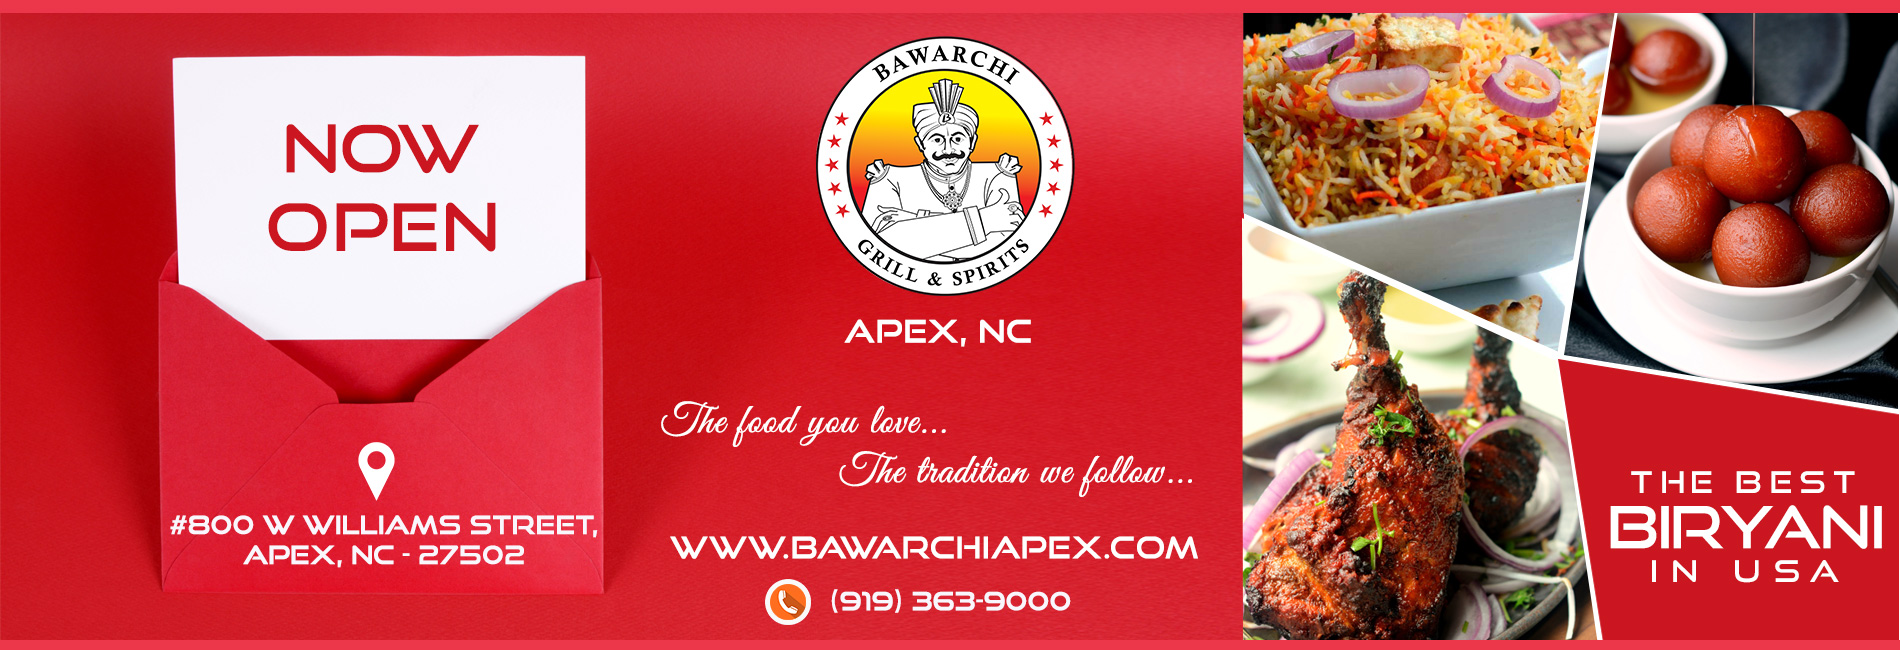 Bawarchi Now Open location - Apex, NC